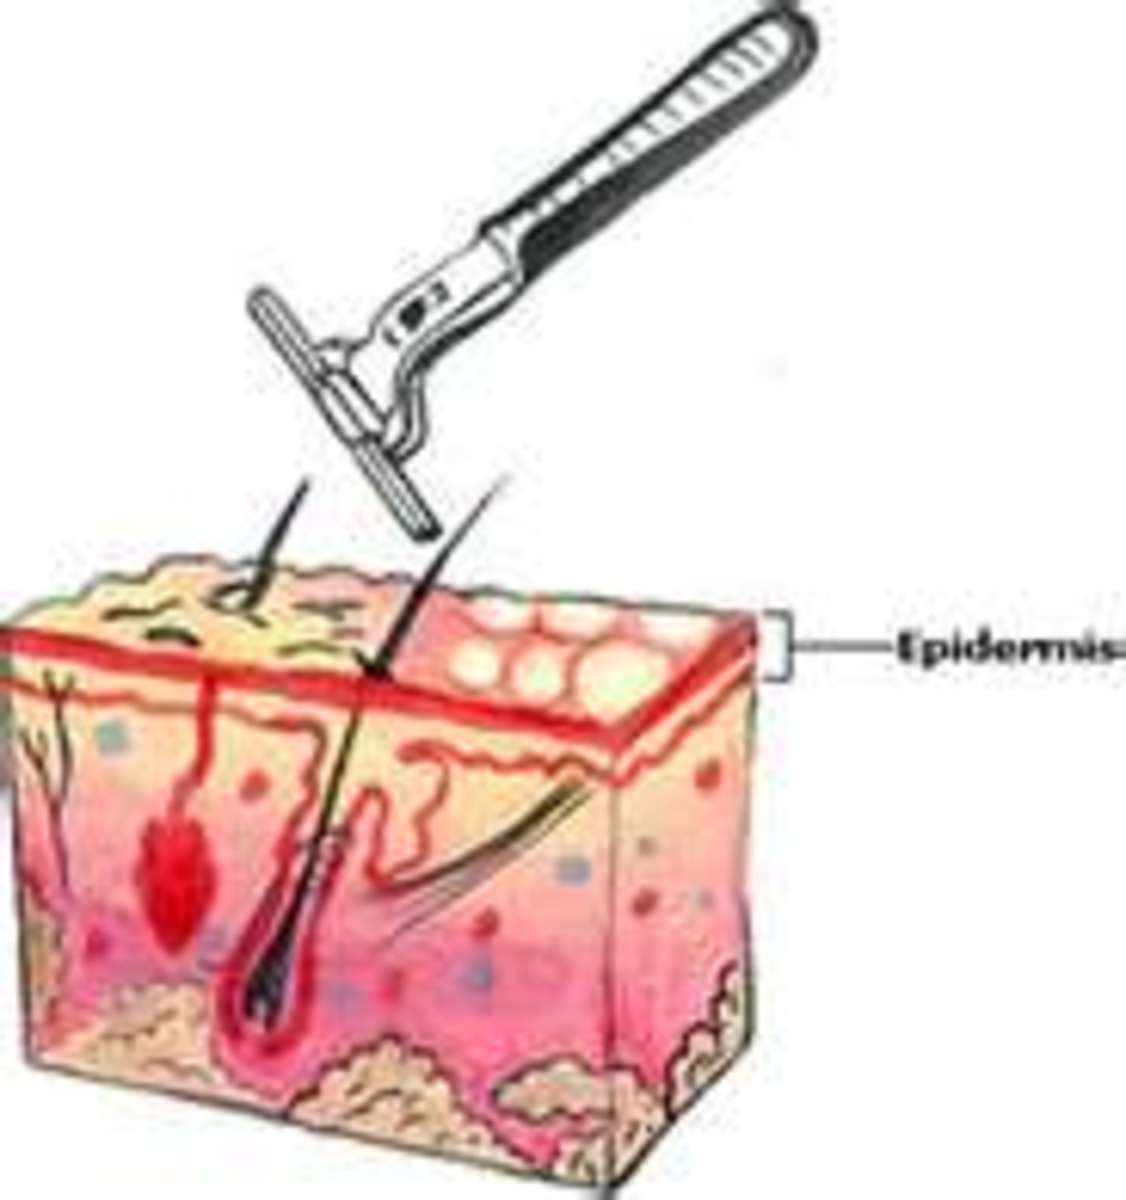 how-to-prevent-razor-burn-sooth-pain-bumps